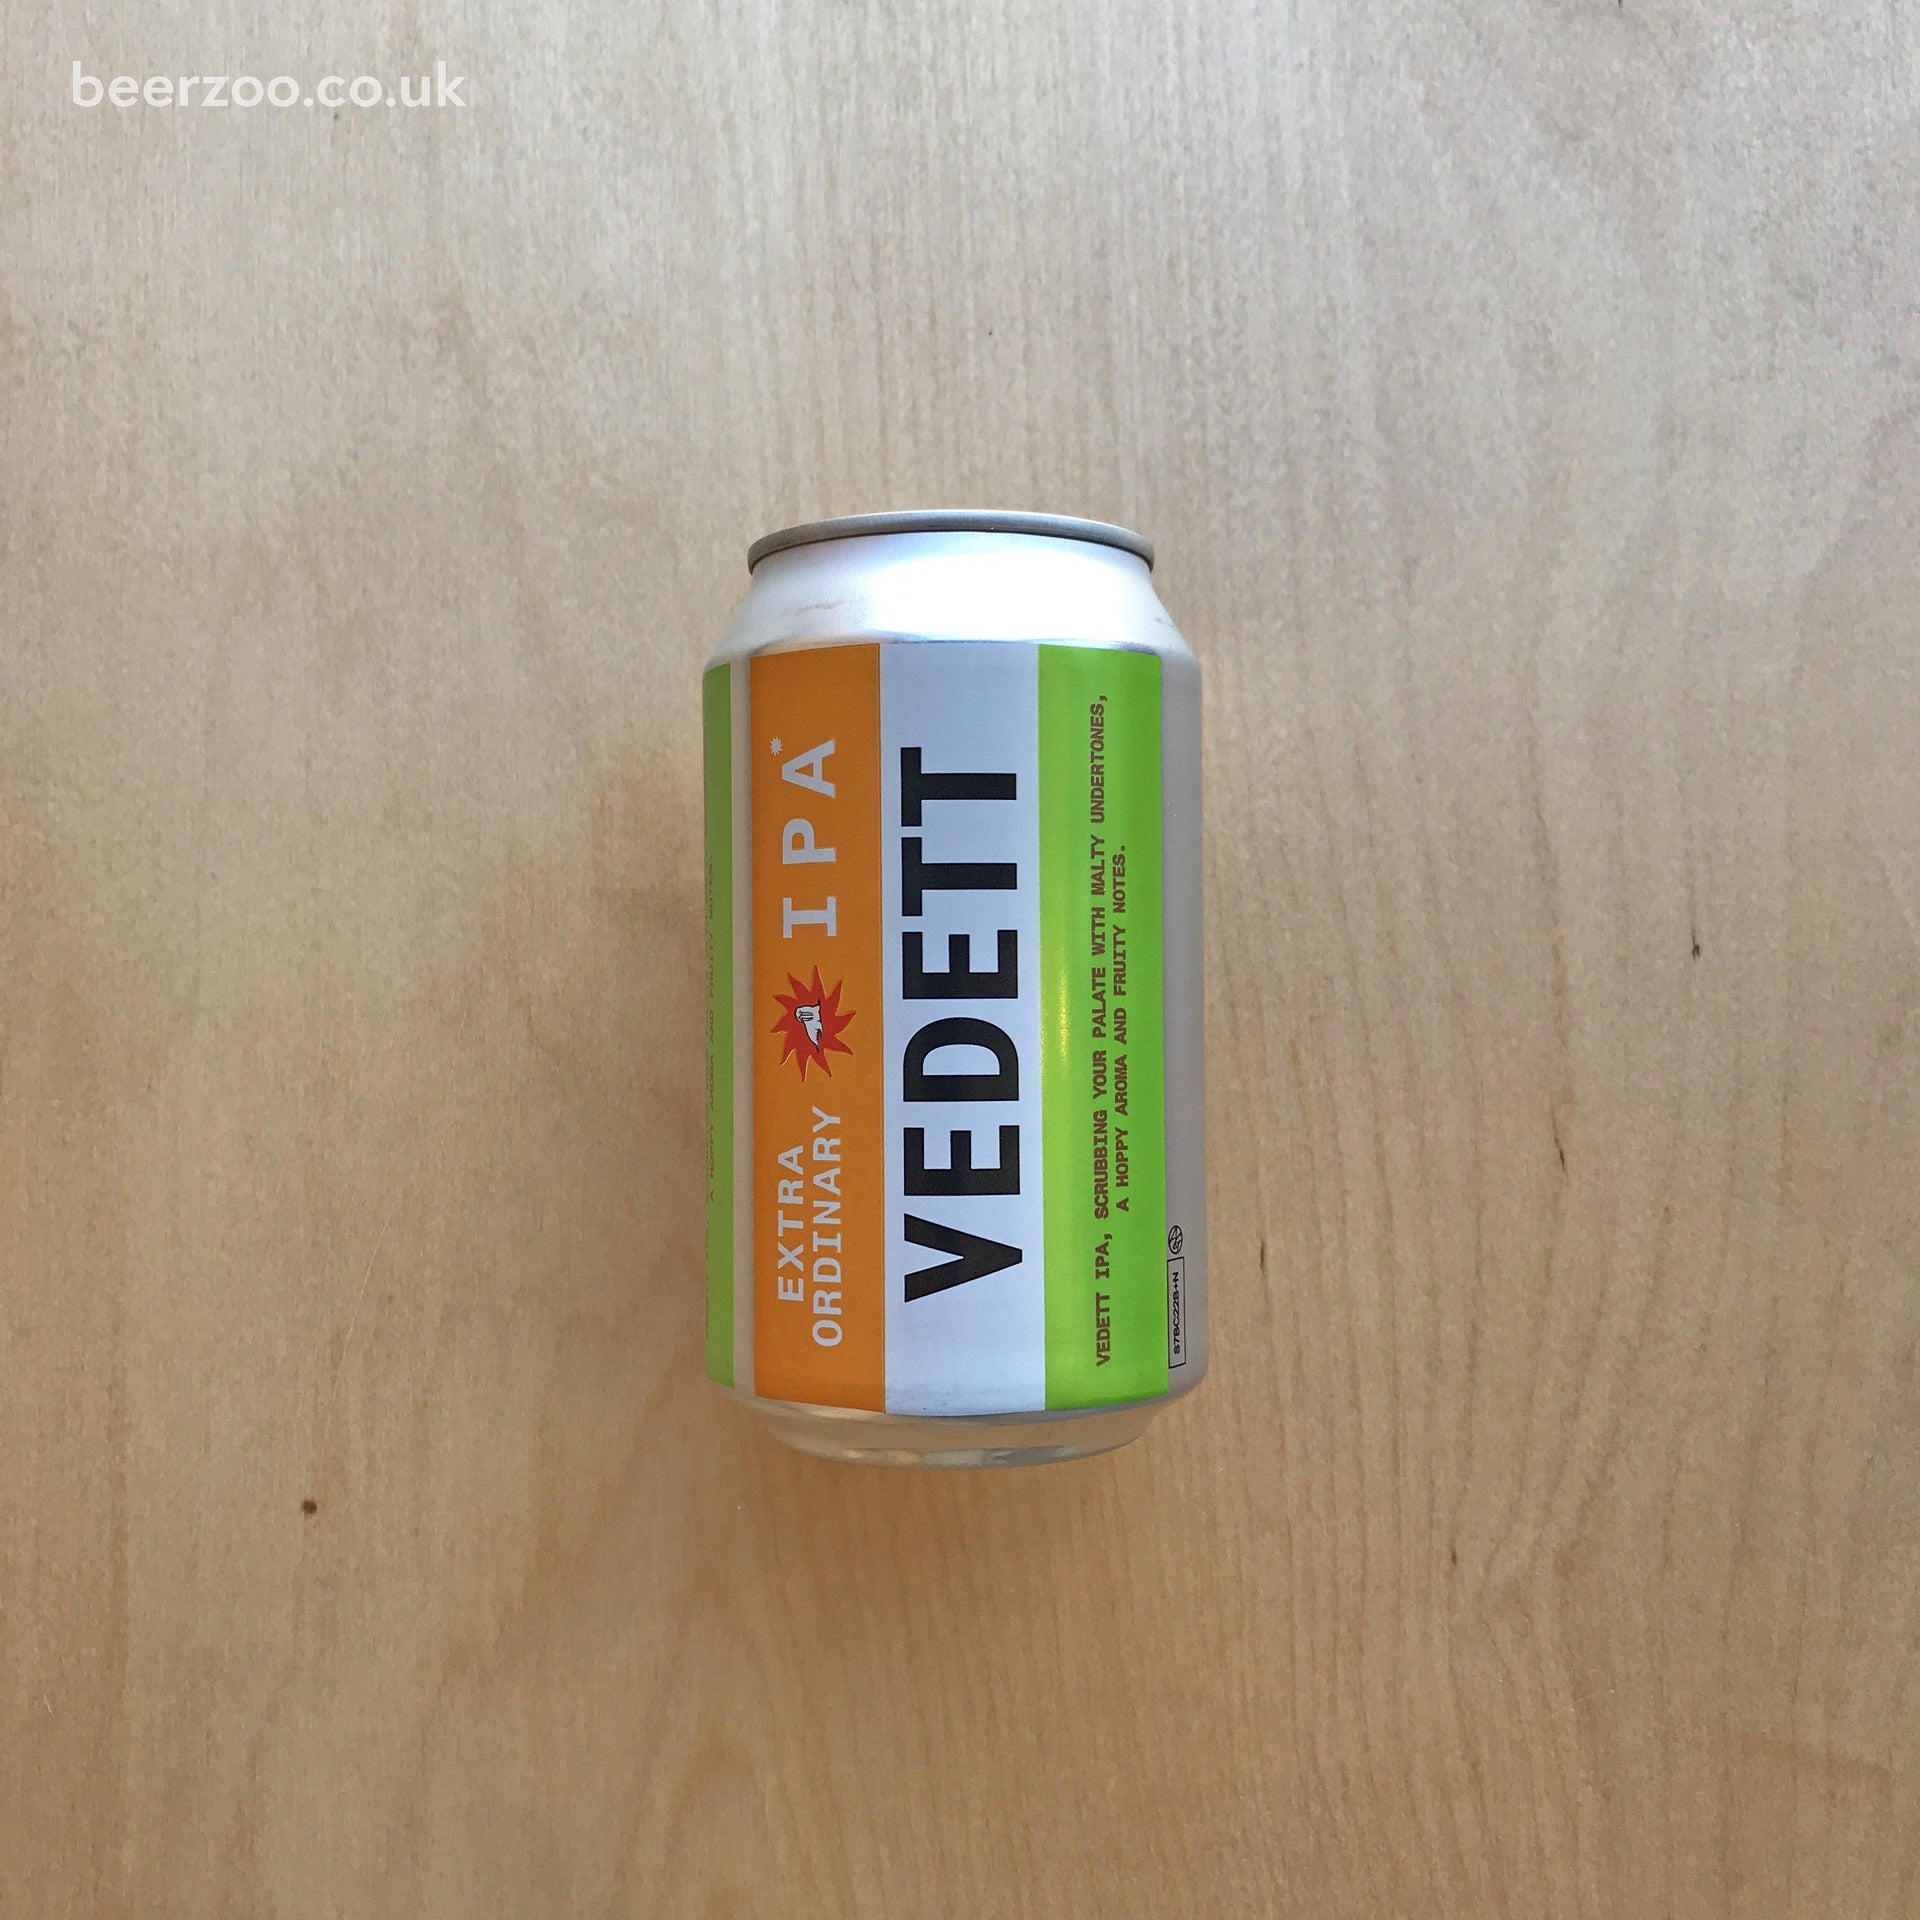 Vedett - IPA 5.5% (330ml)